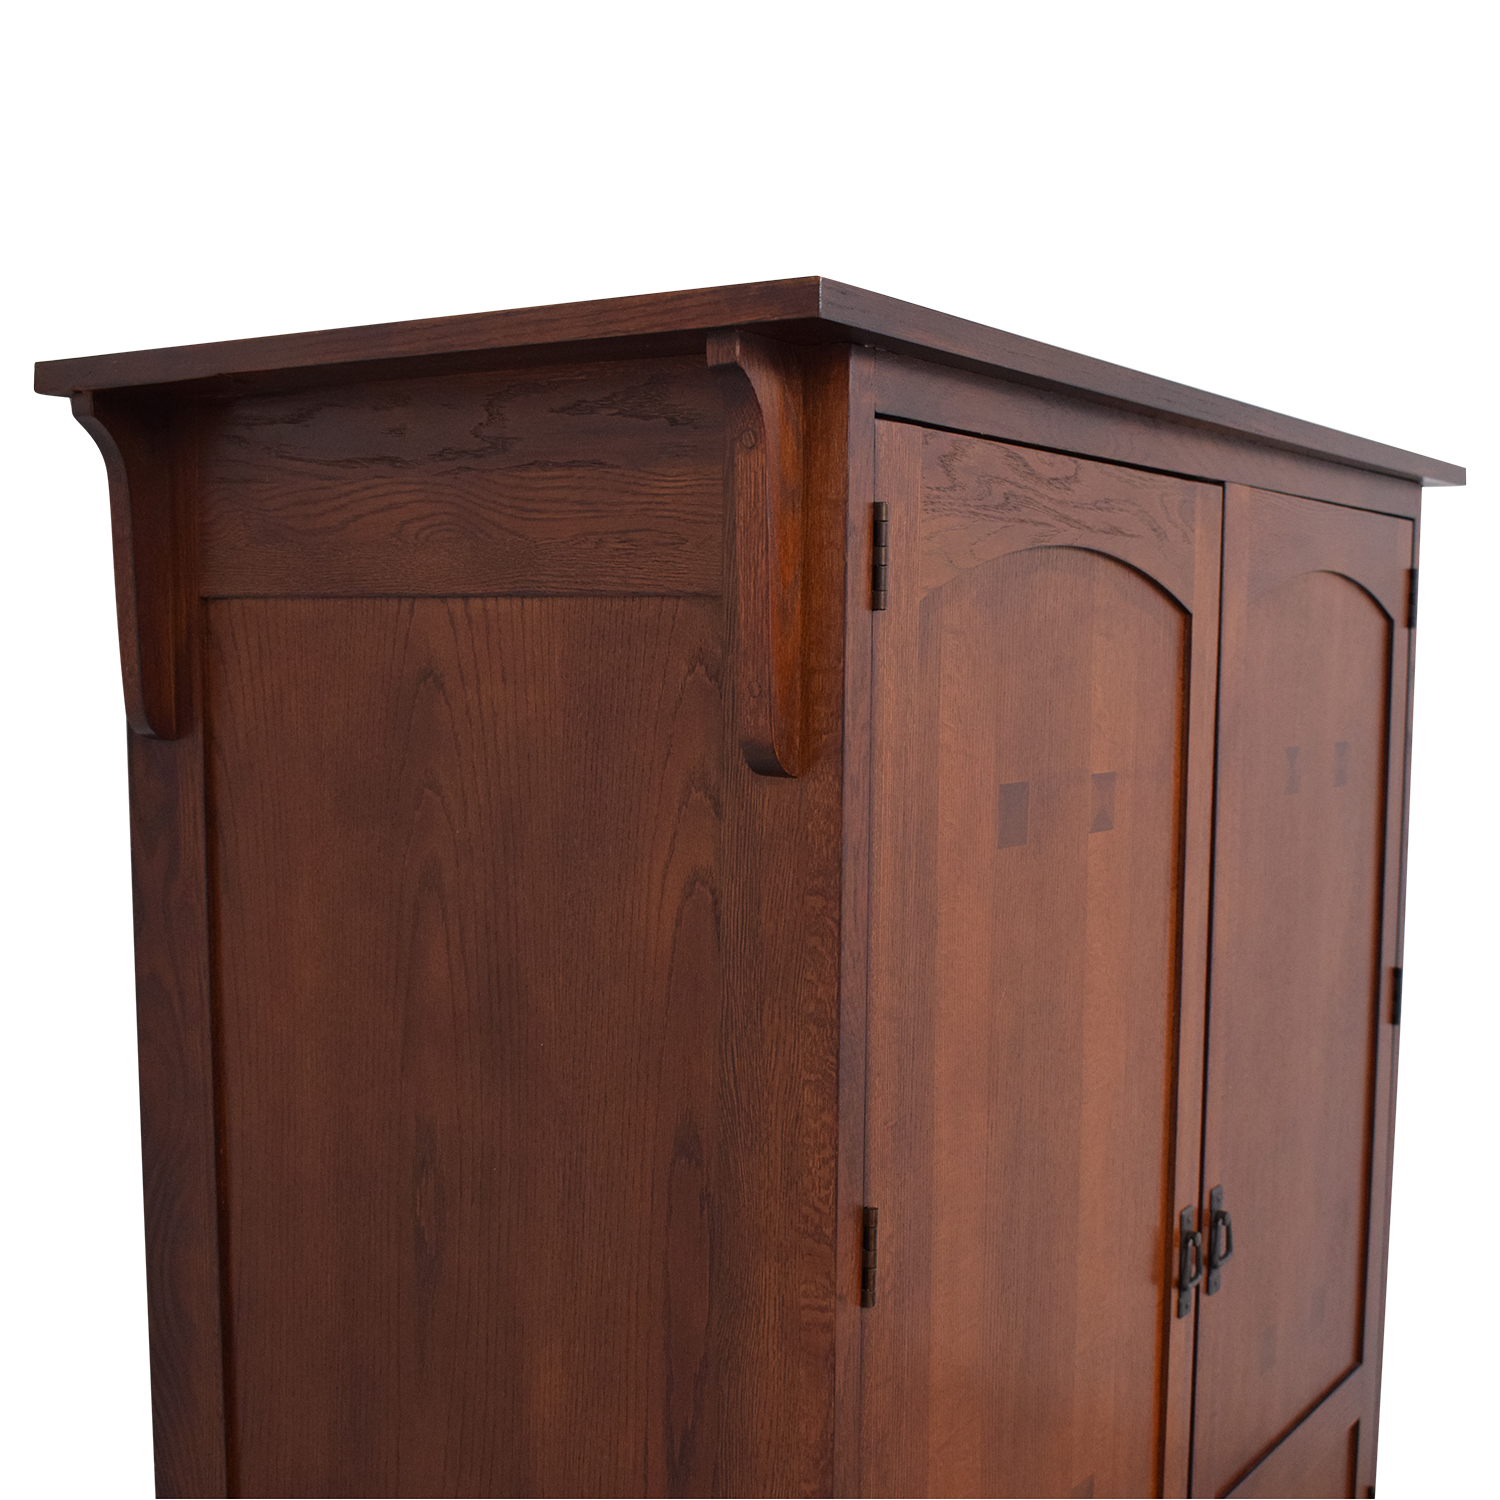 Southern Furniture of Conover Southern Furniture of Conover Armoire Desk nyc